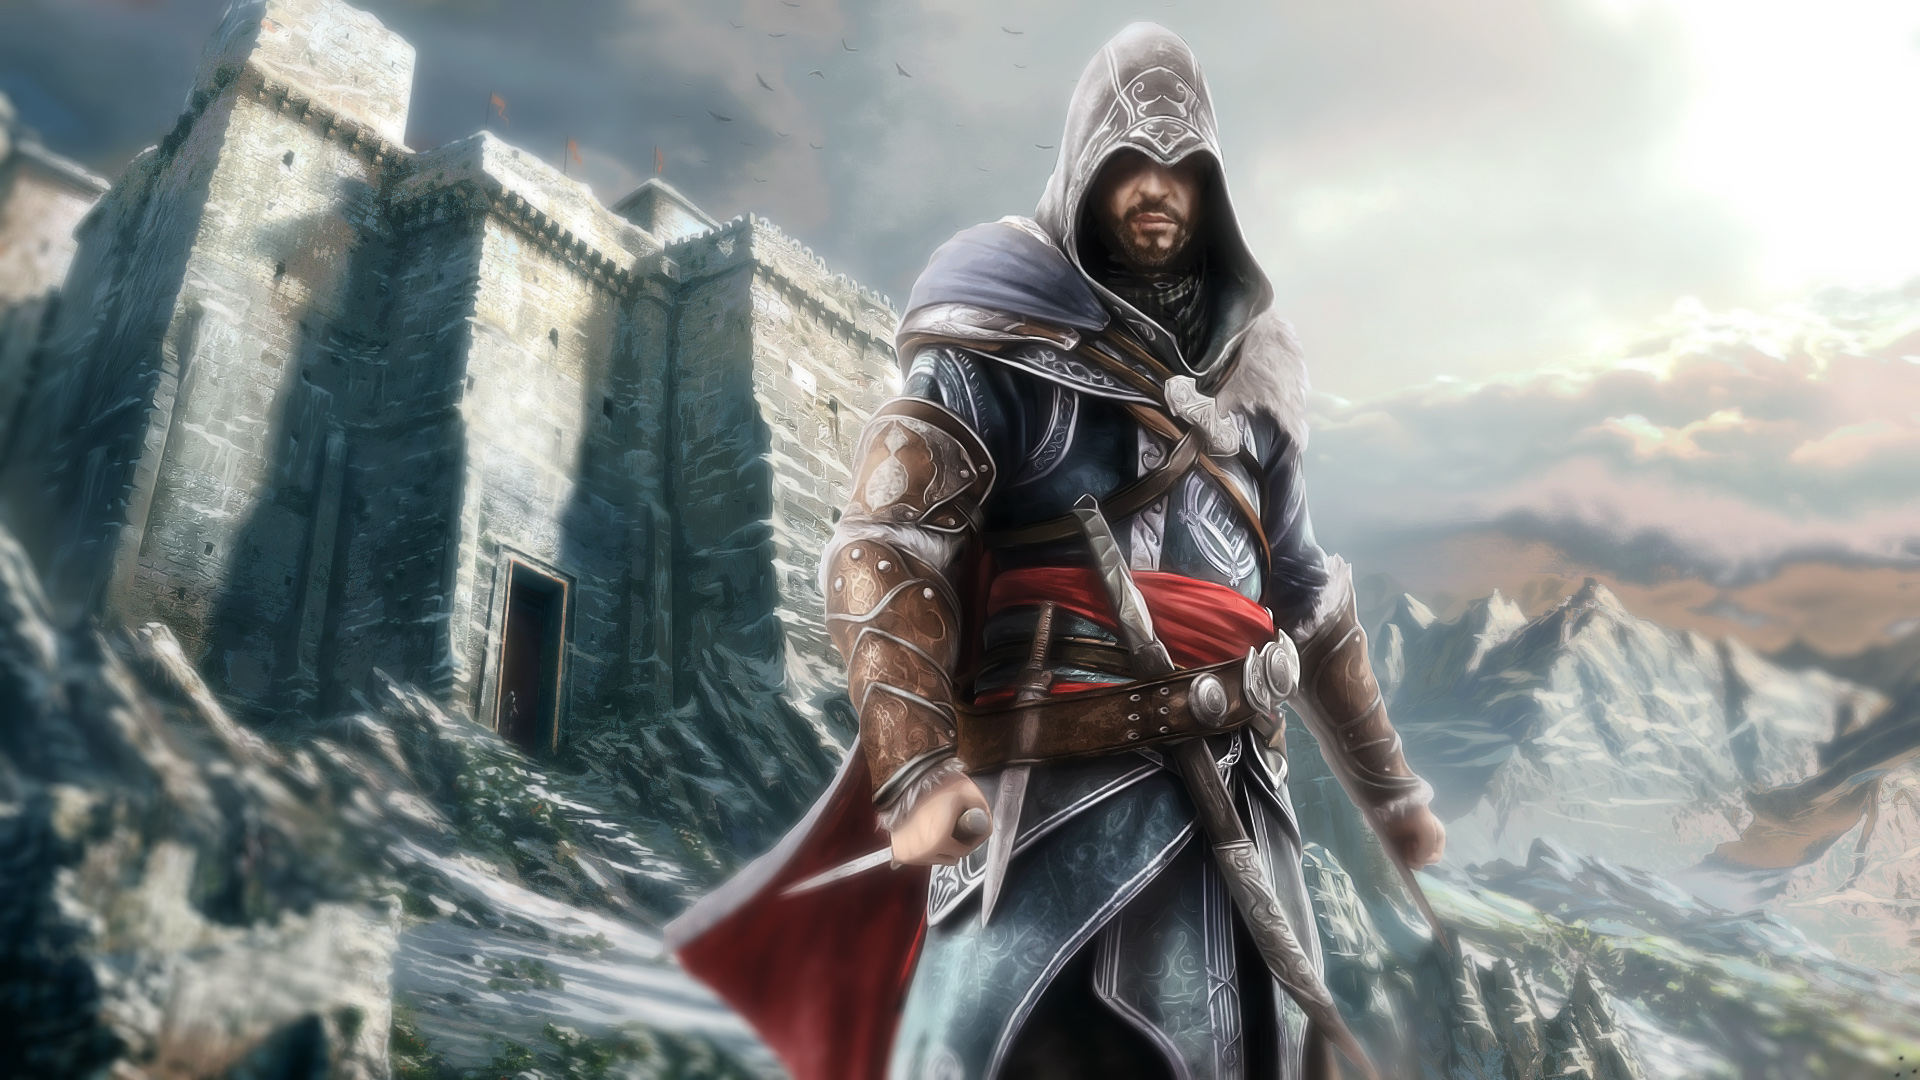 Assassin's Creed: Revelations Wallpapers, Pictures, Images